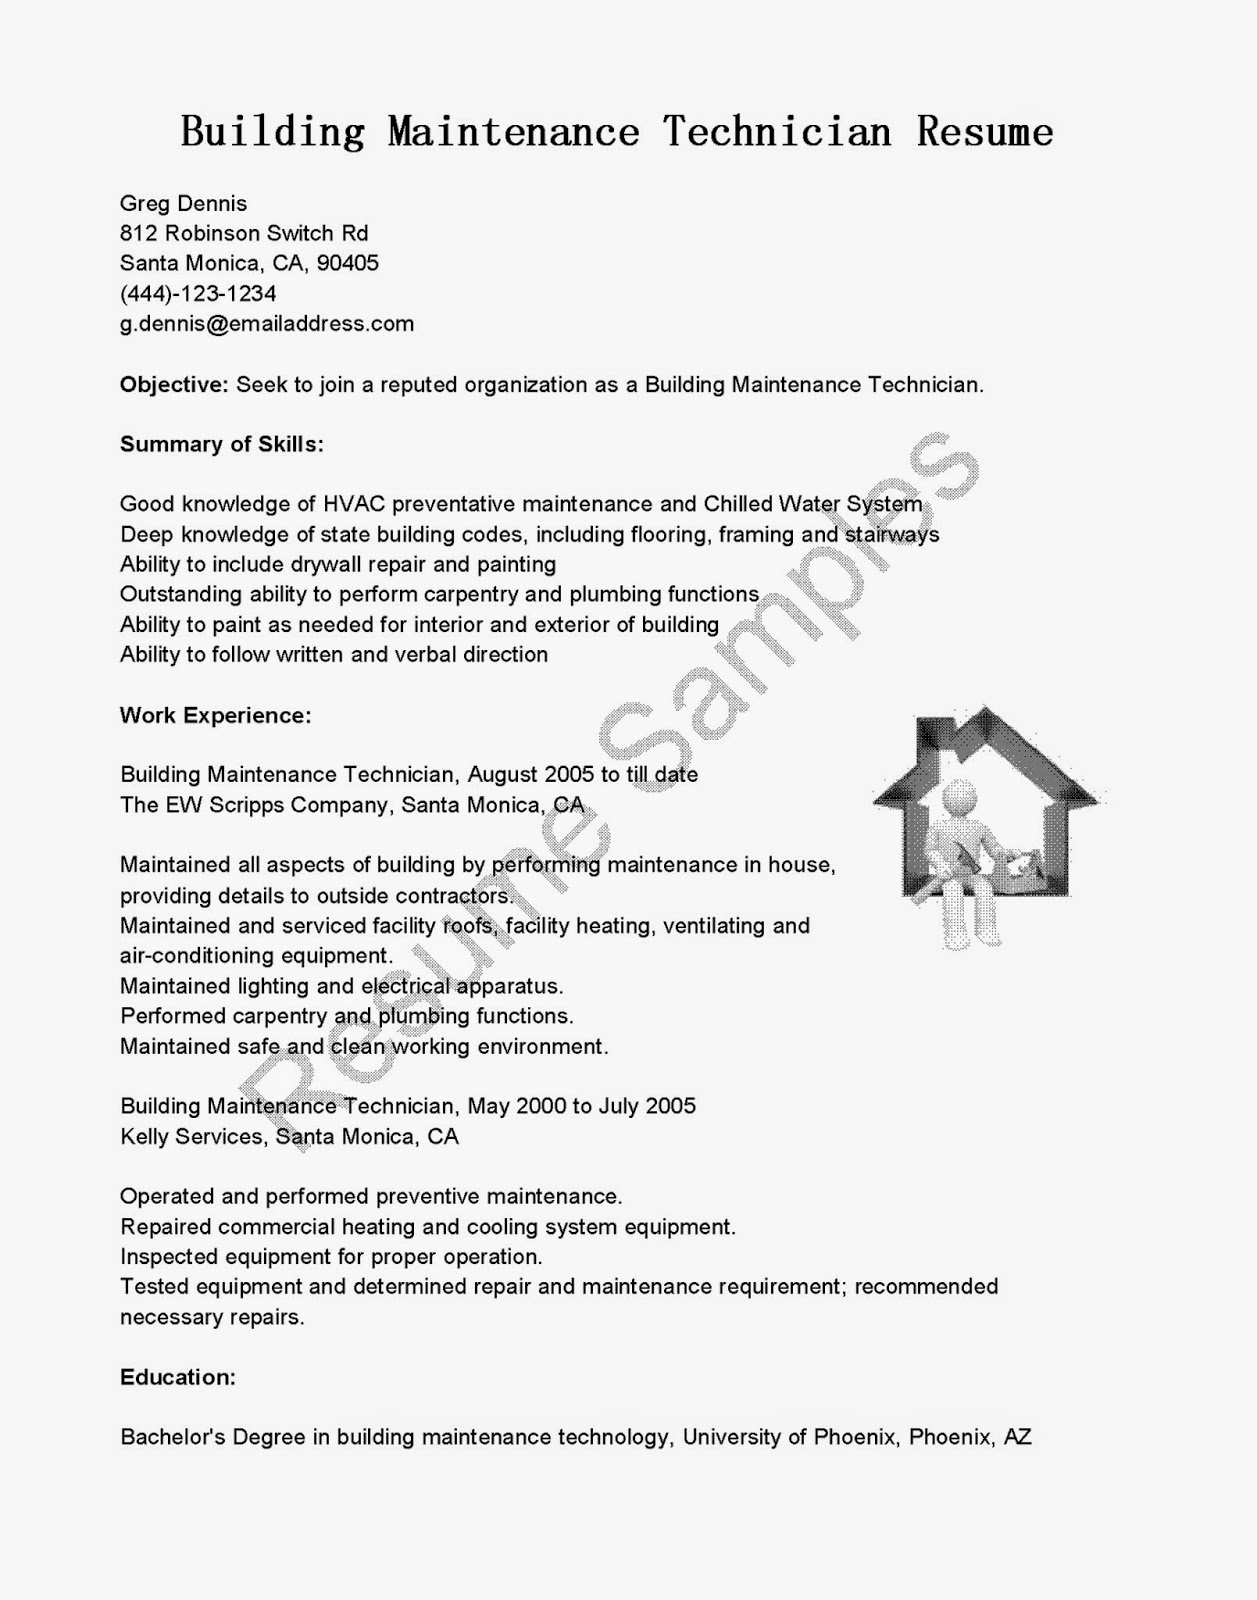 Hospitality Job Description For Resume Janitorial Services ...